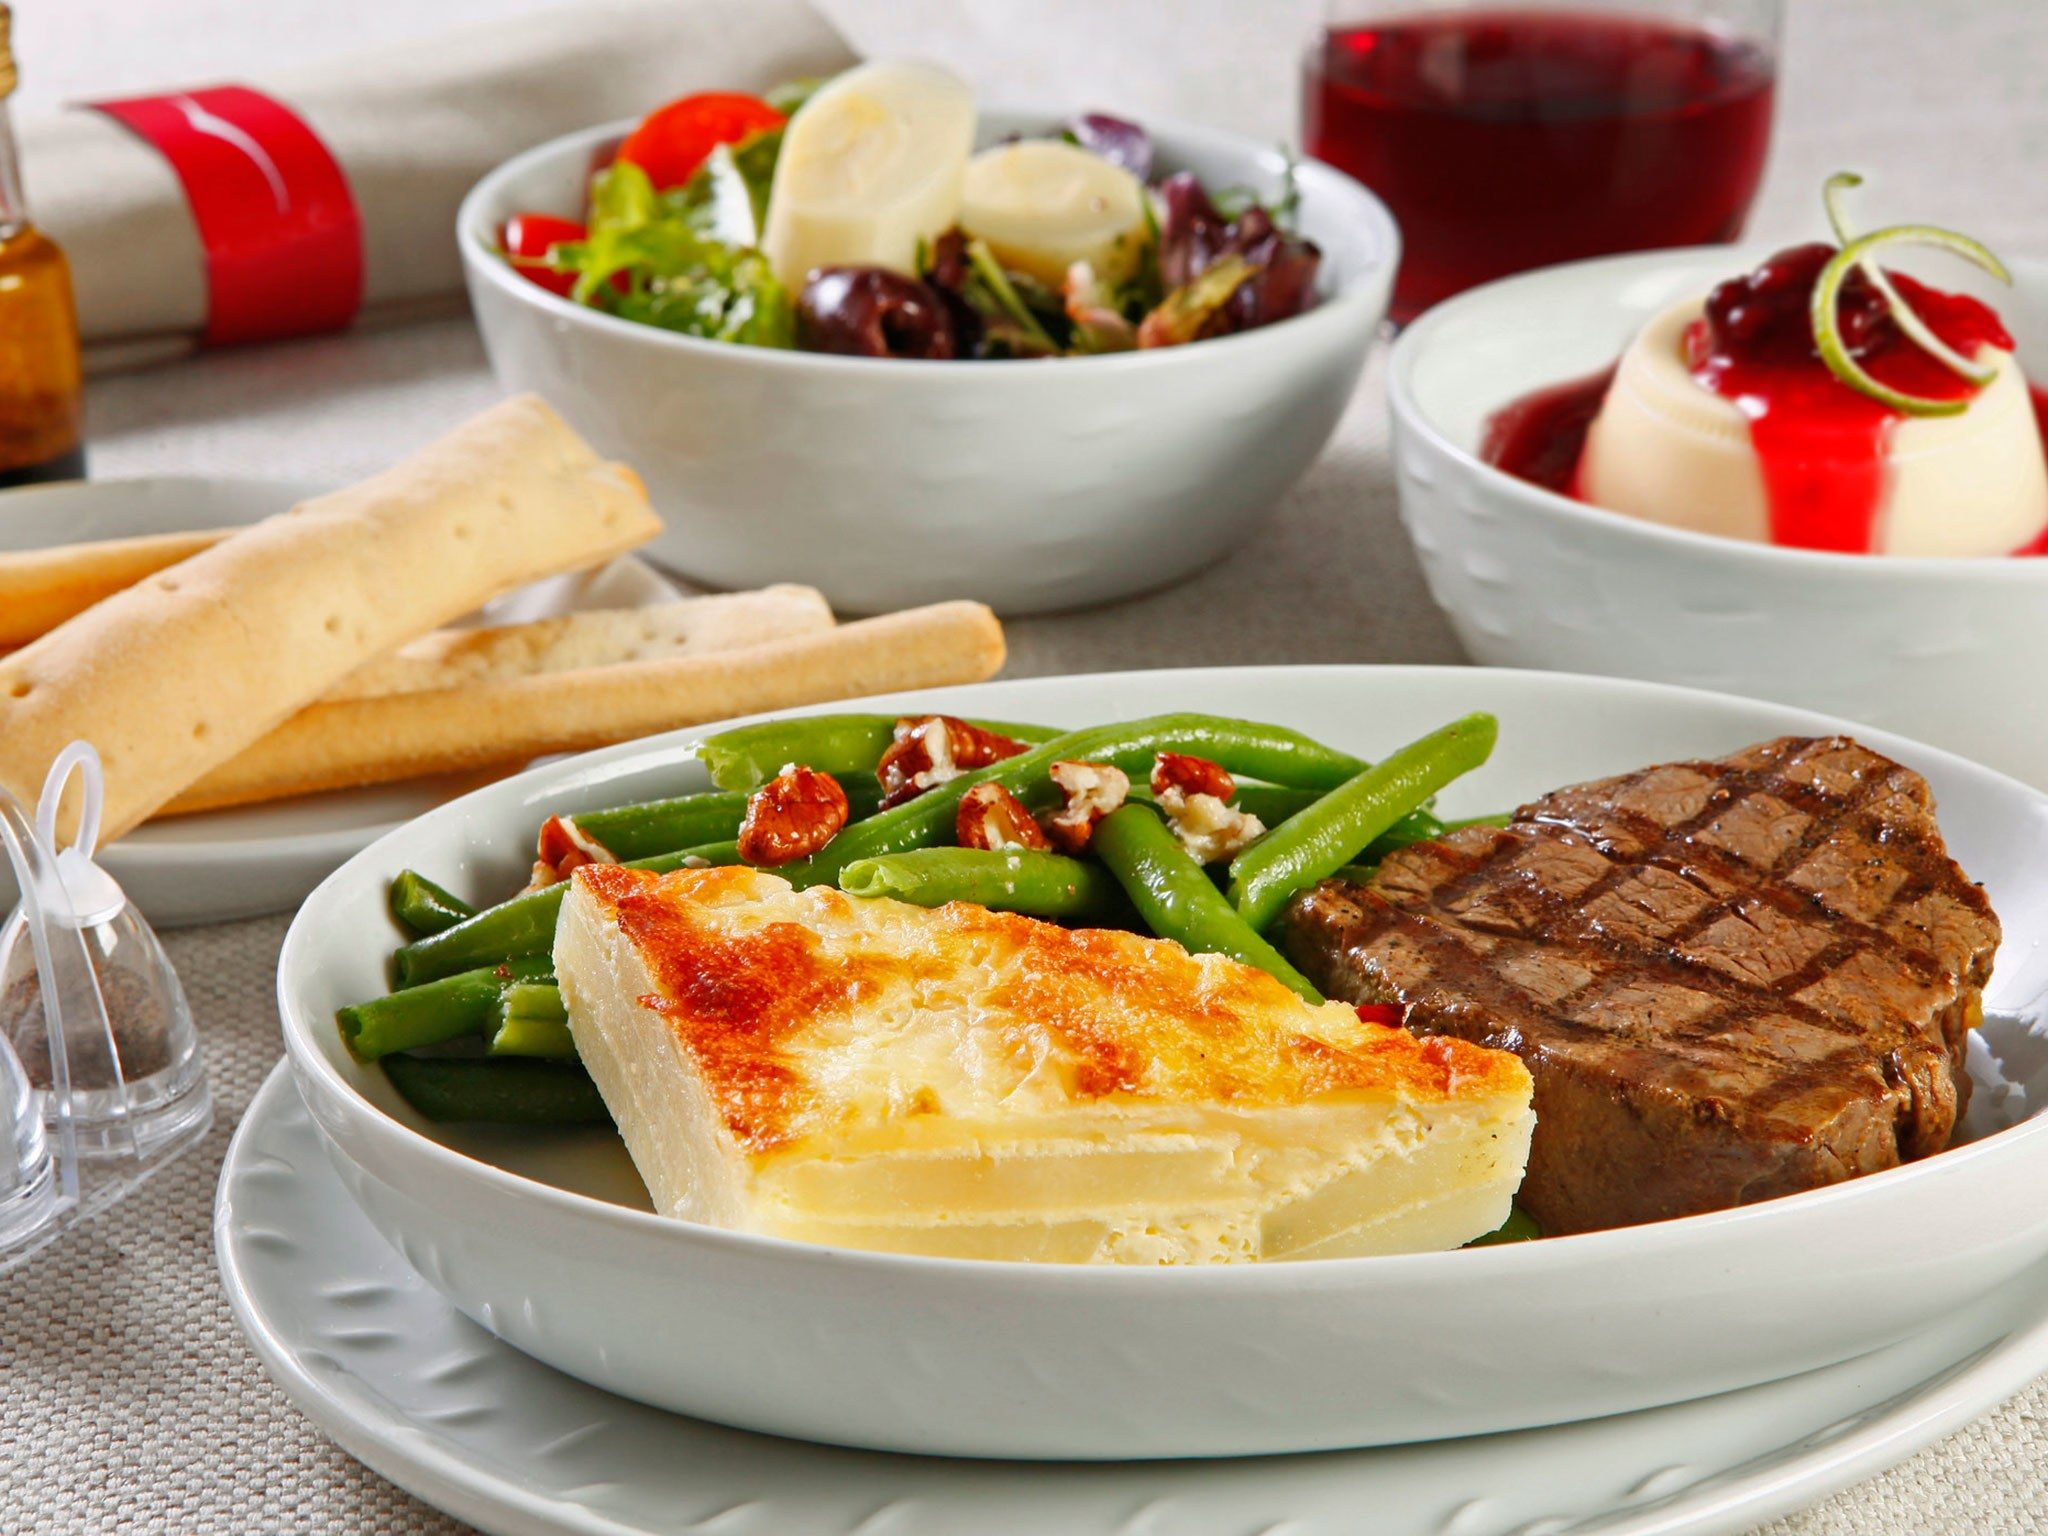 Related image Airline food, Inflight meal, Meals